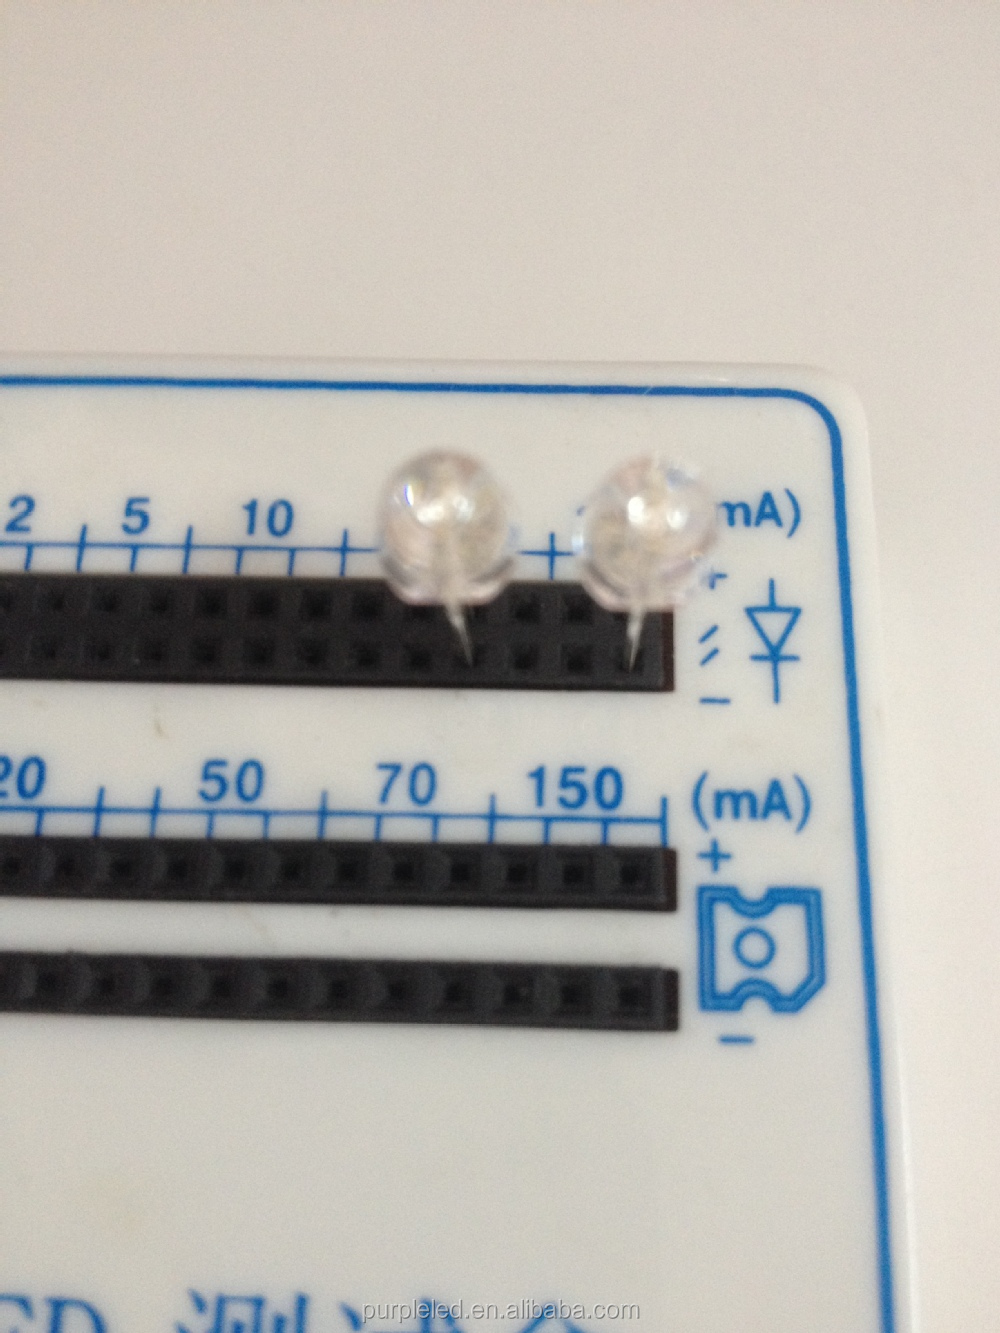 5mm light emitting diodes for sale light led diode